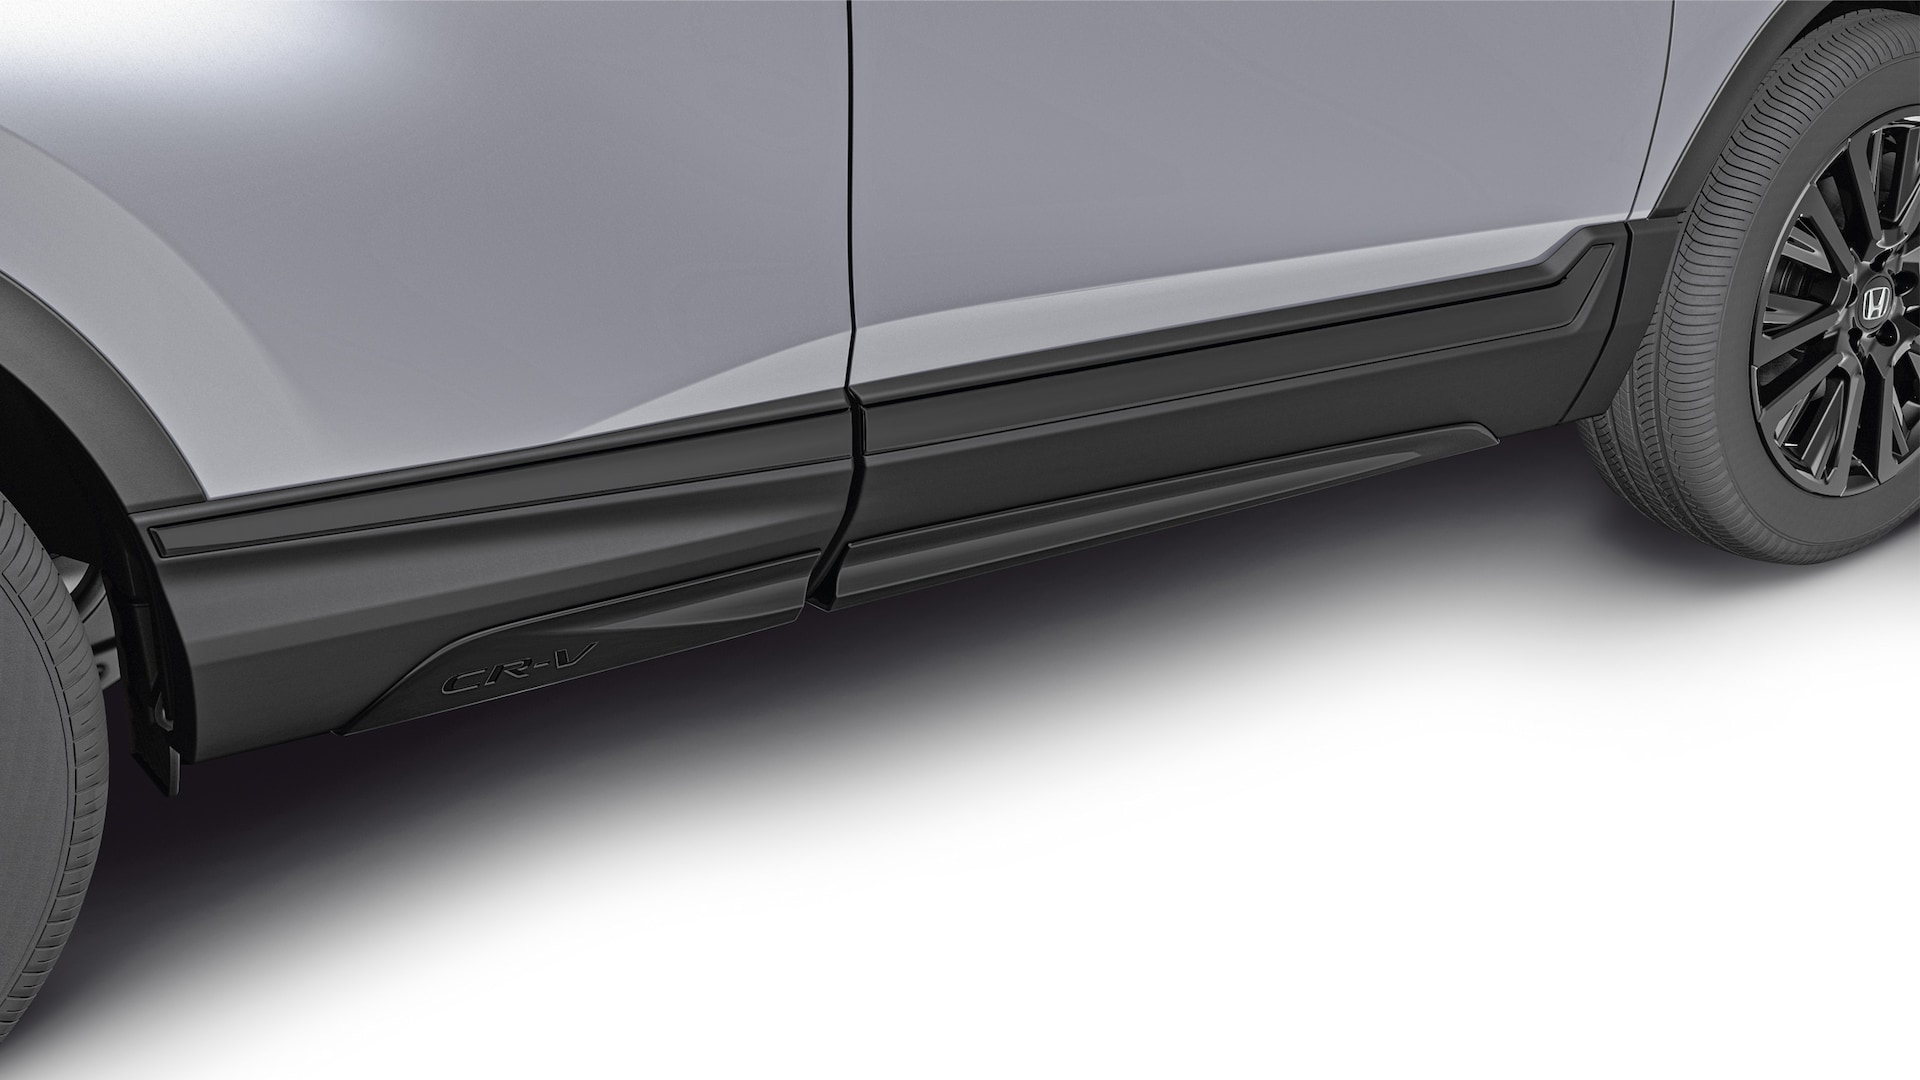 Detail of accessory lower trim accent on the 2020 Honda CR-V.